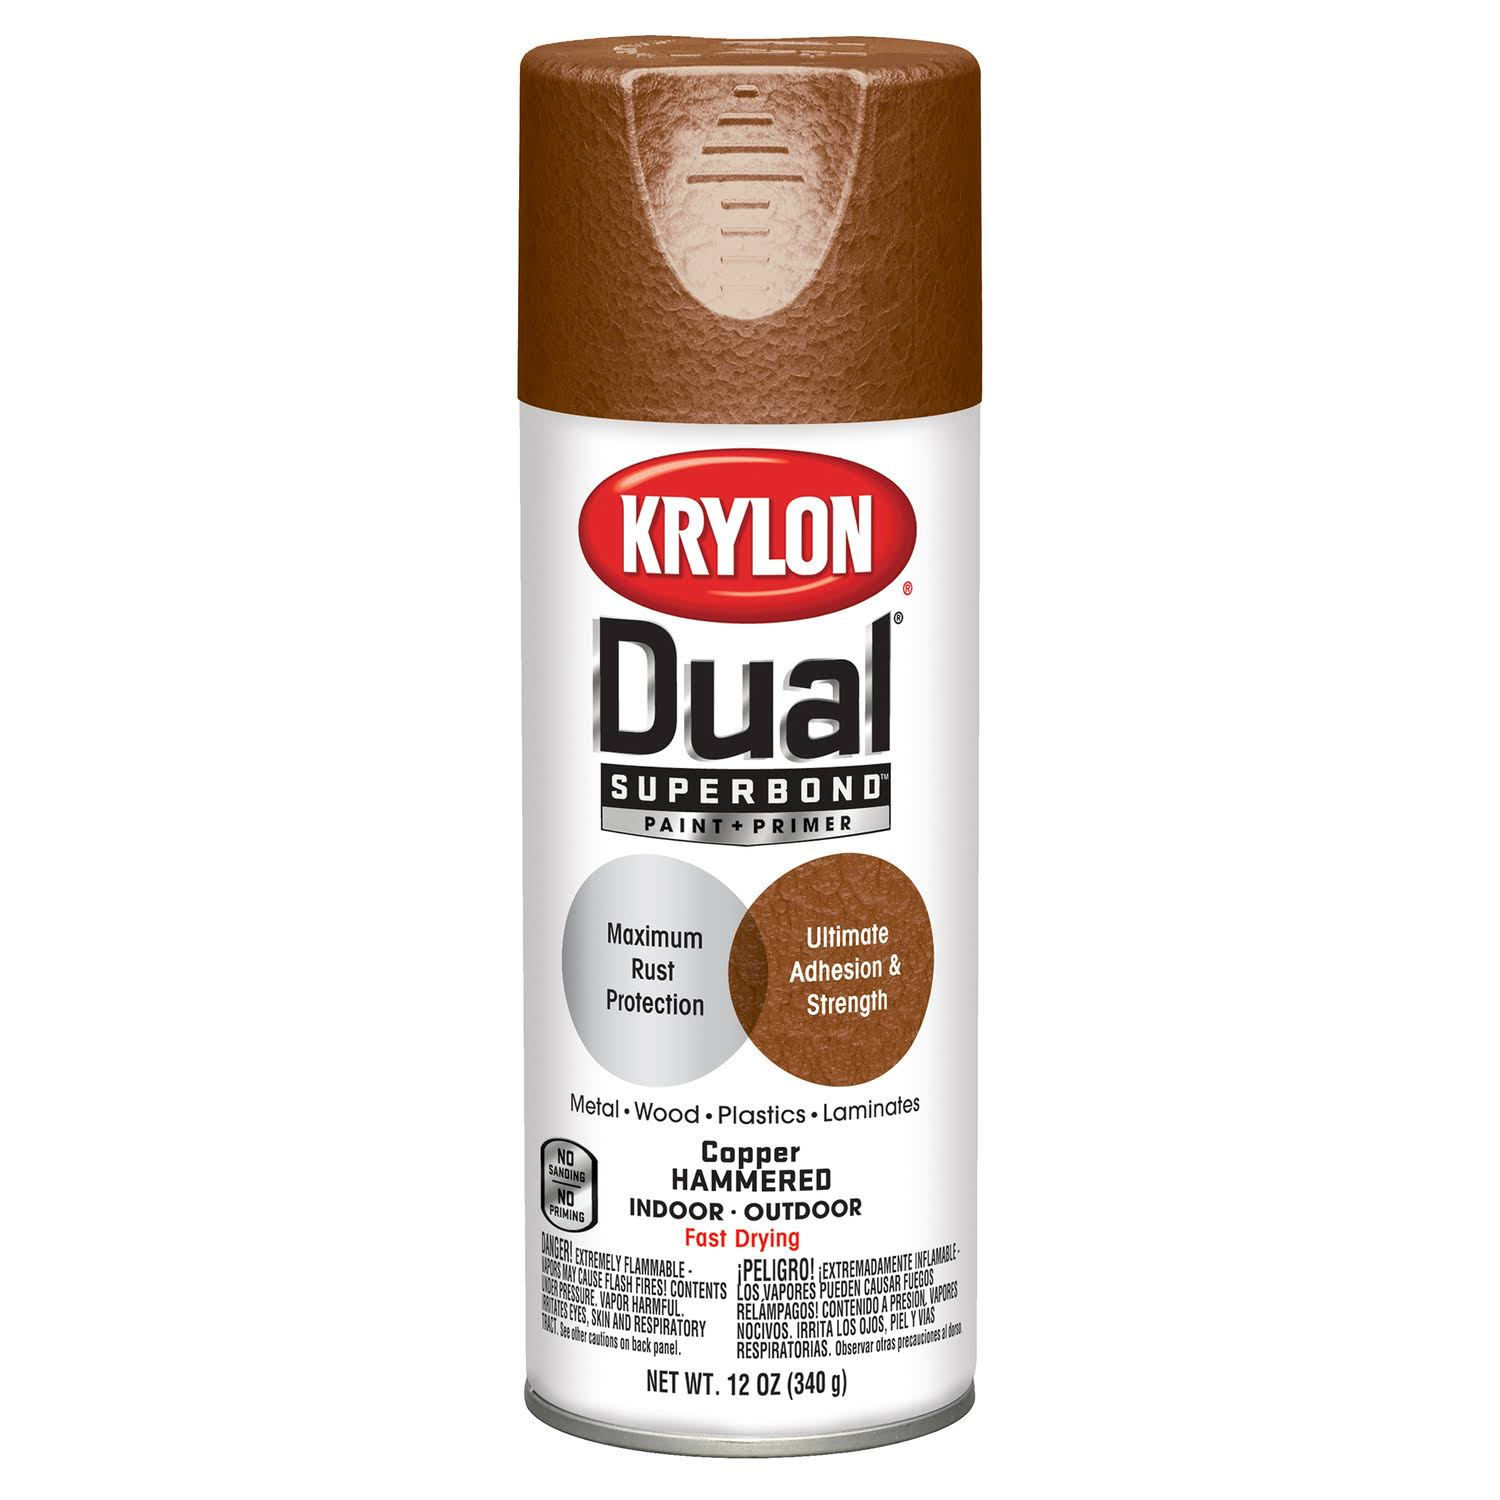 Krylon Dual Paint And Primer Spray Paint - Copper Hammered